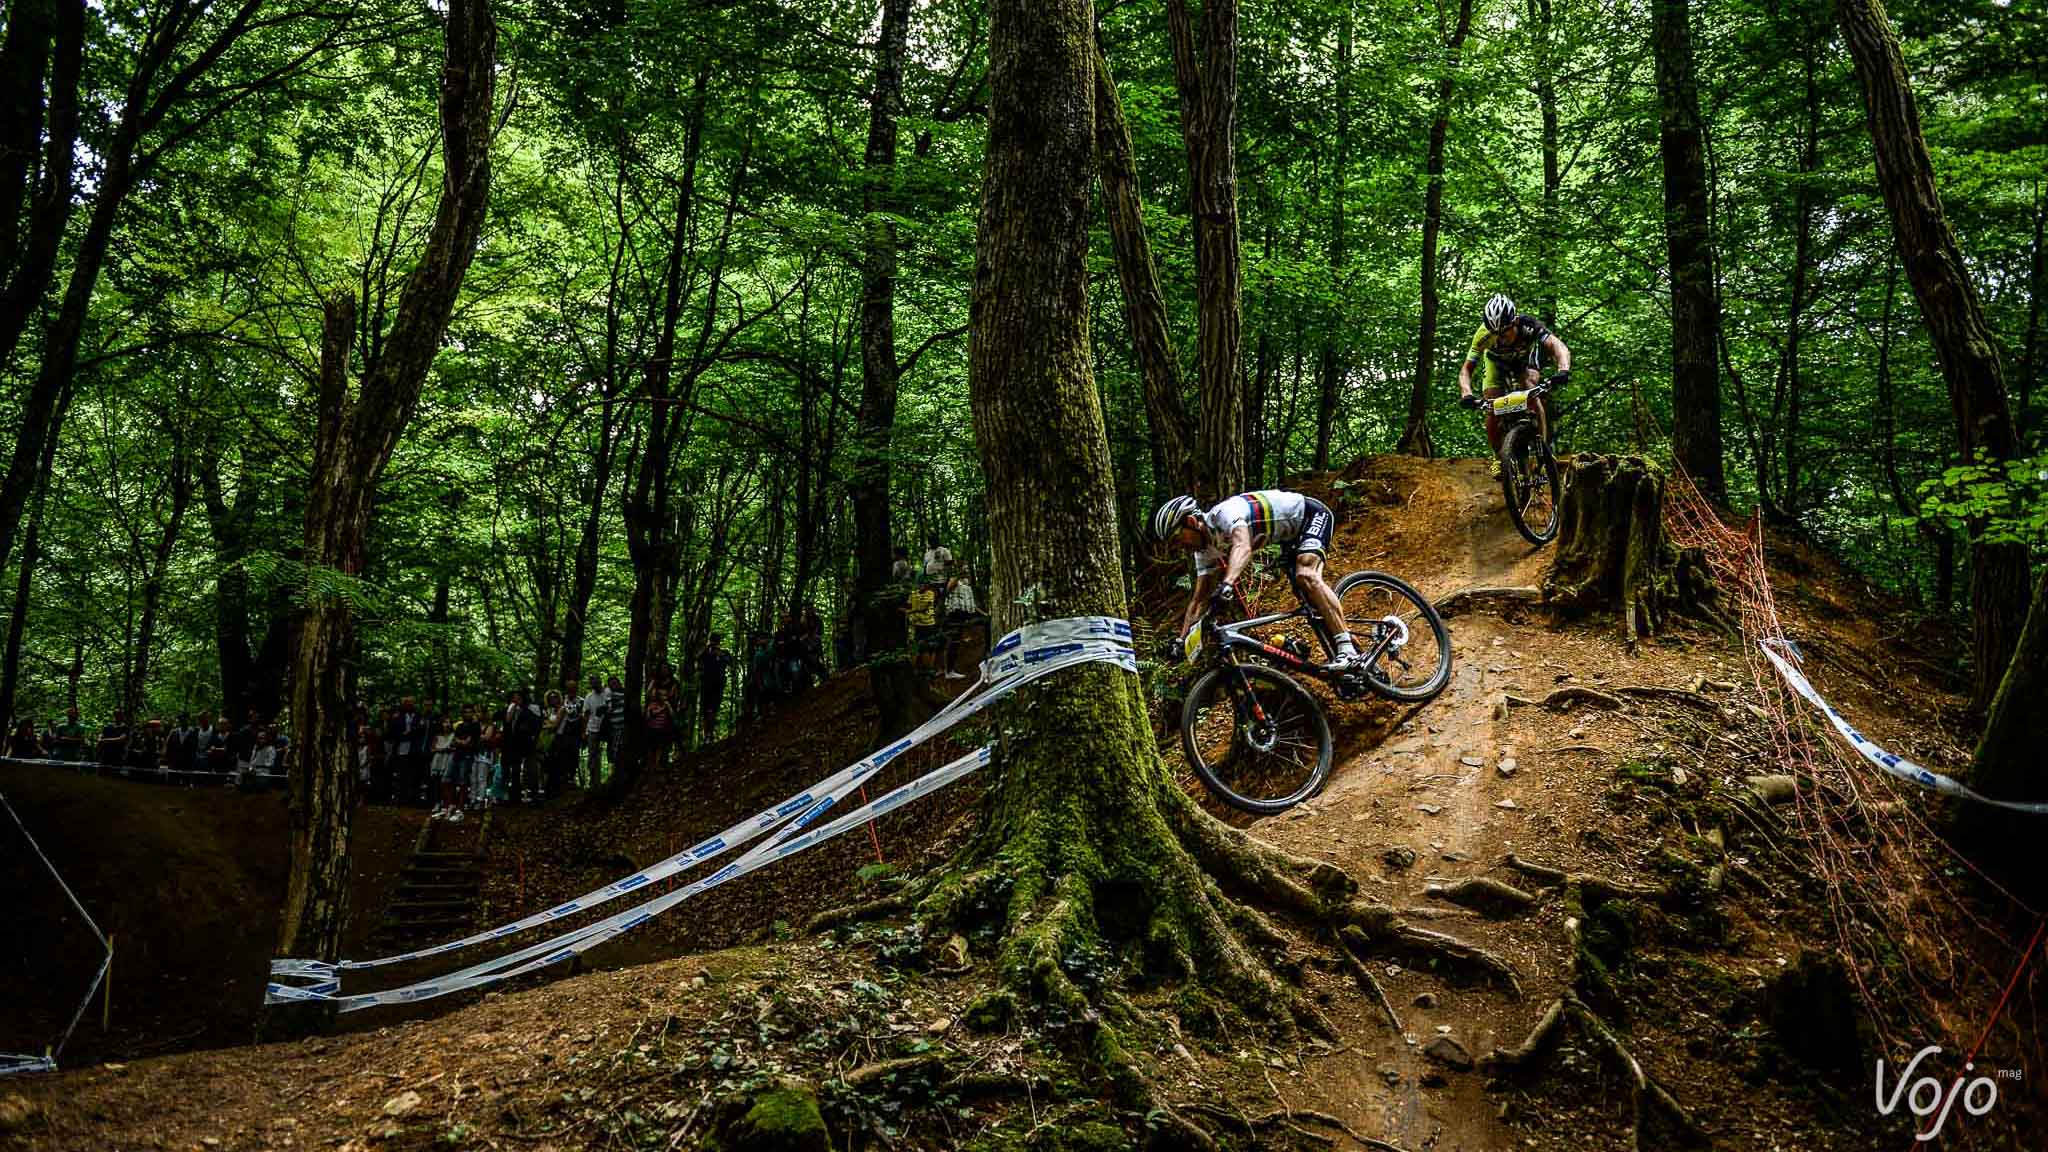 Coupe_France_VTT_Lons_le_Saunier_Absalon_Marotte_Koretzky_Copyright_Romain_Laurent_VojoMag-4